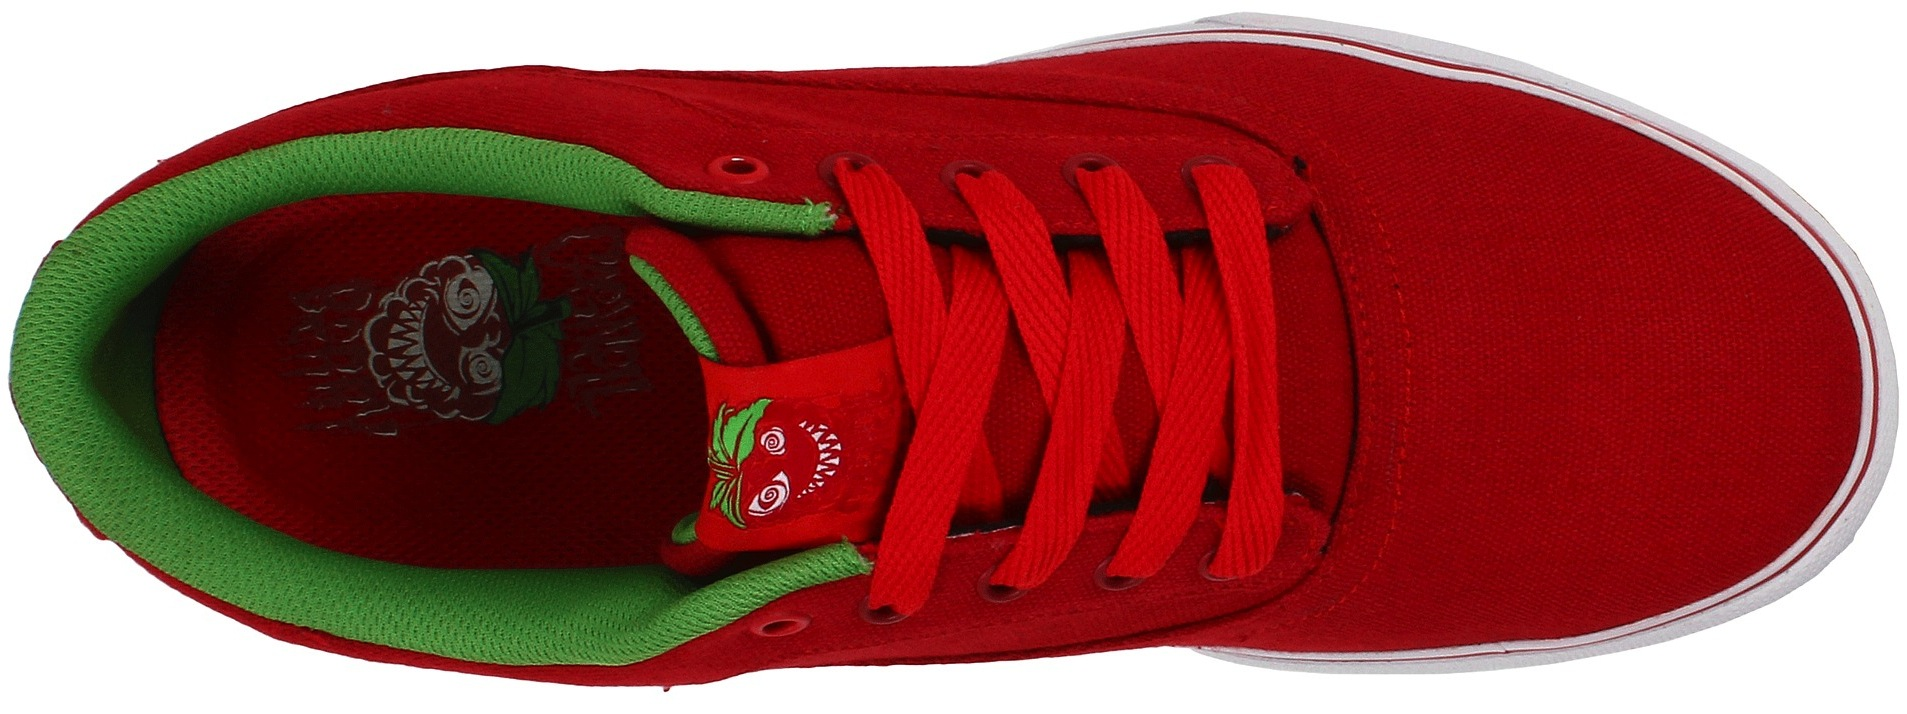 Osiris Skateboard shoes Caswell Berry VLC strawberry Vegan Skate shoes